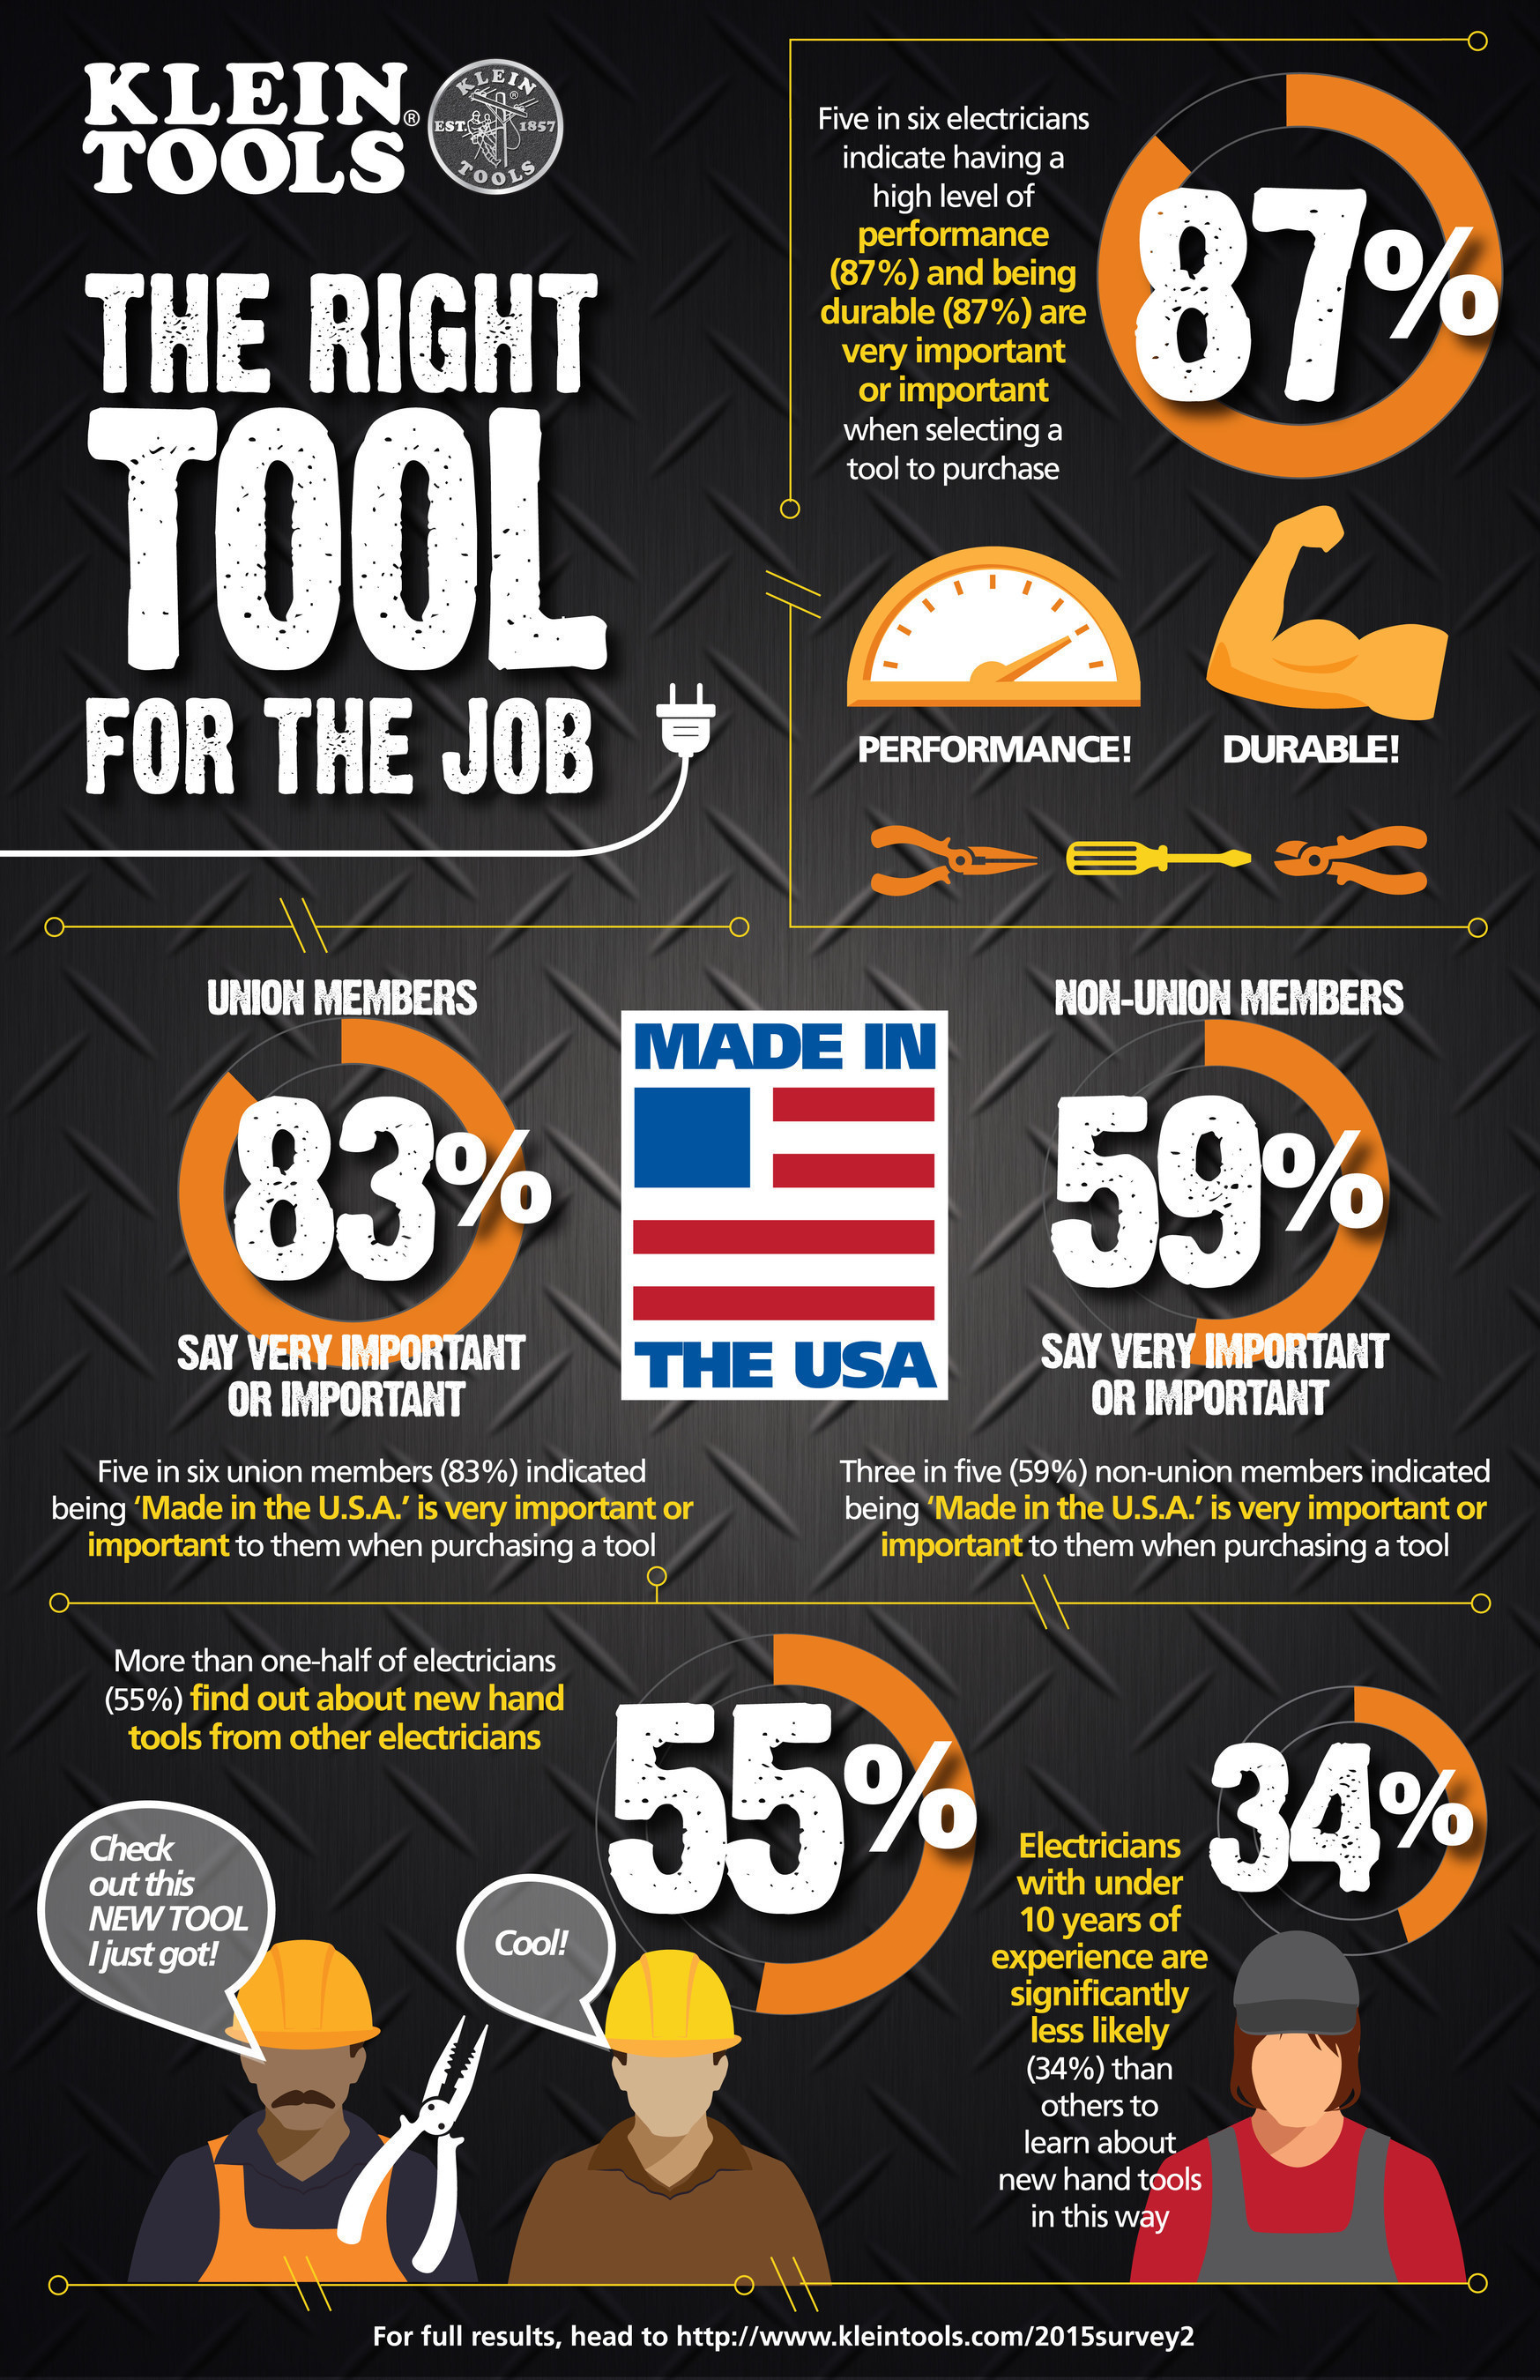 Klein Tools (http://www.kleintools.com), for professionals since 1857, today announced the second set of results from its 'State of the Industry' survey